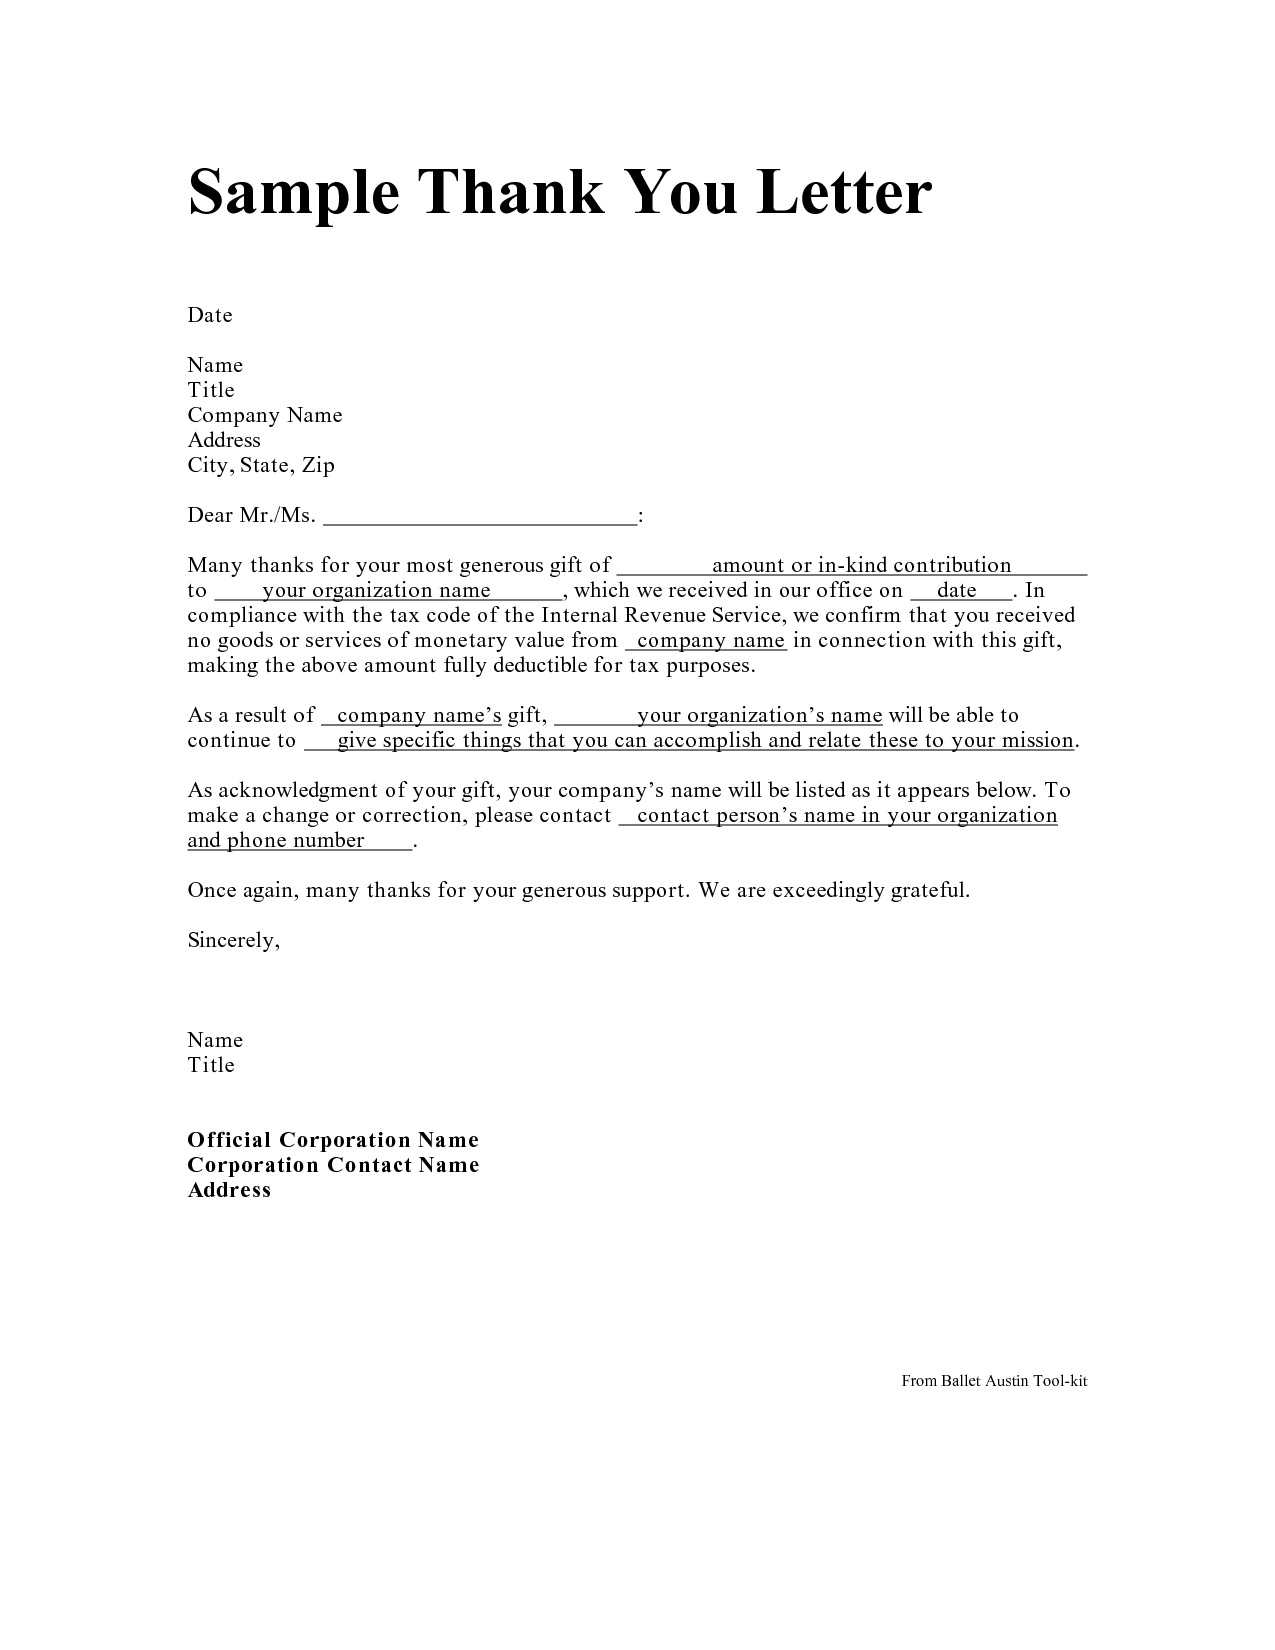 Car Gift Letter Template - Personal Thank You Letter Personal Thank You Letter Samples